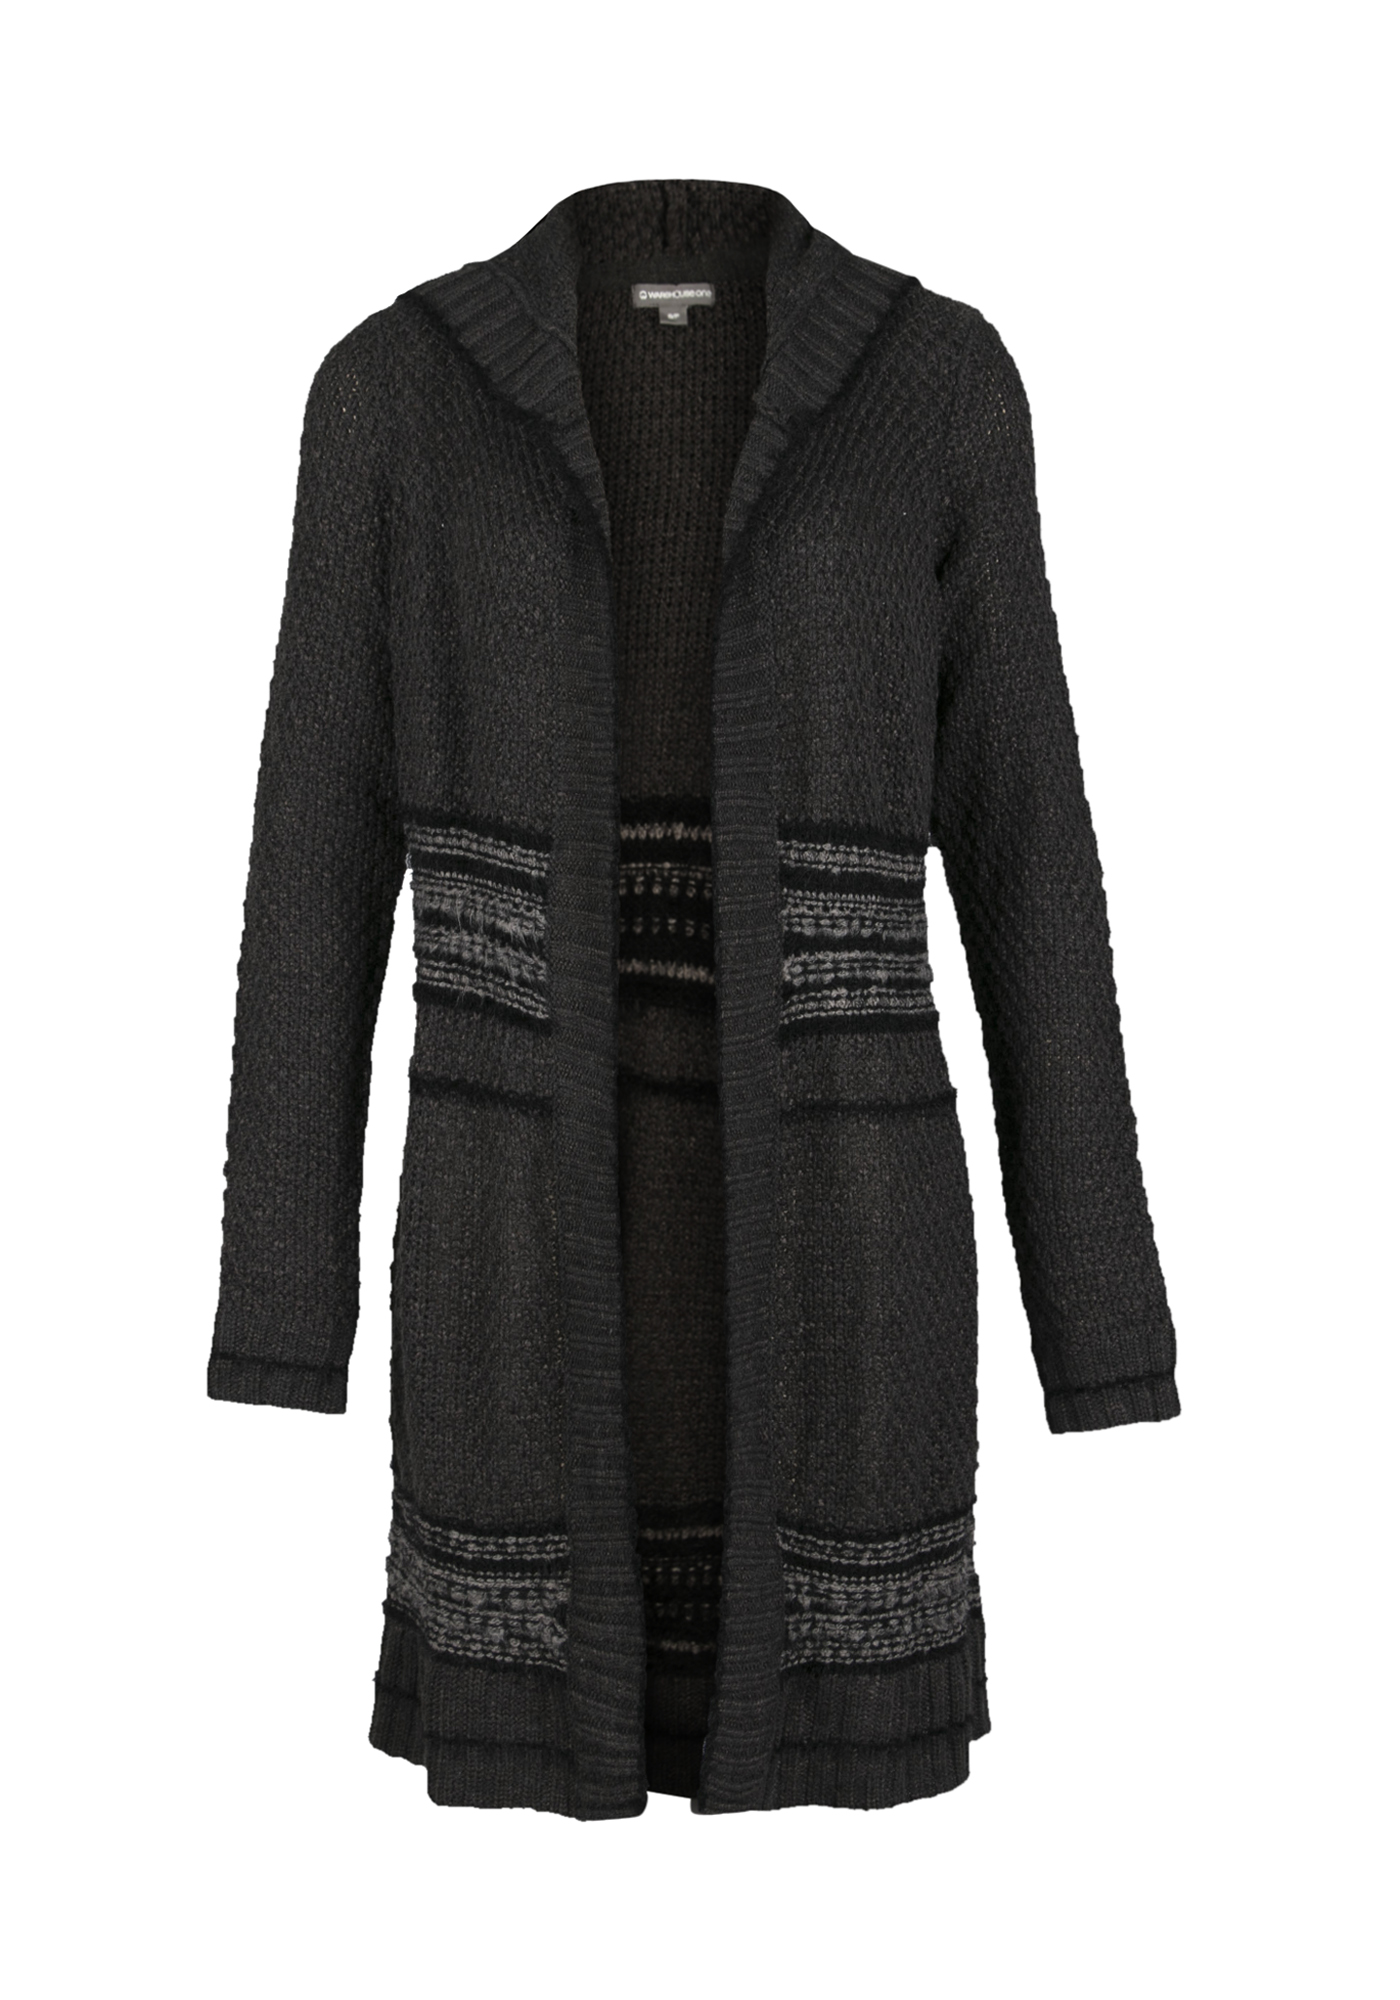 Ladies' Mixed Stitch Duster Cardigan, CHARCOAL, hi-res